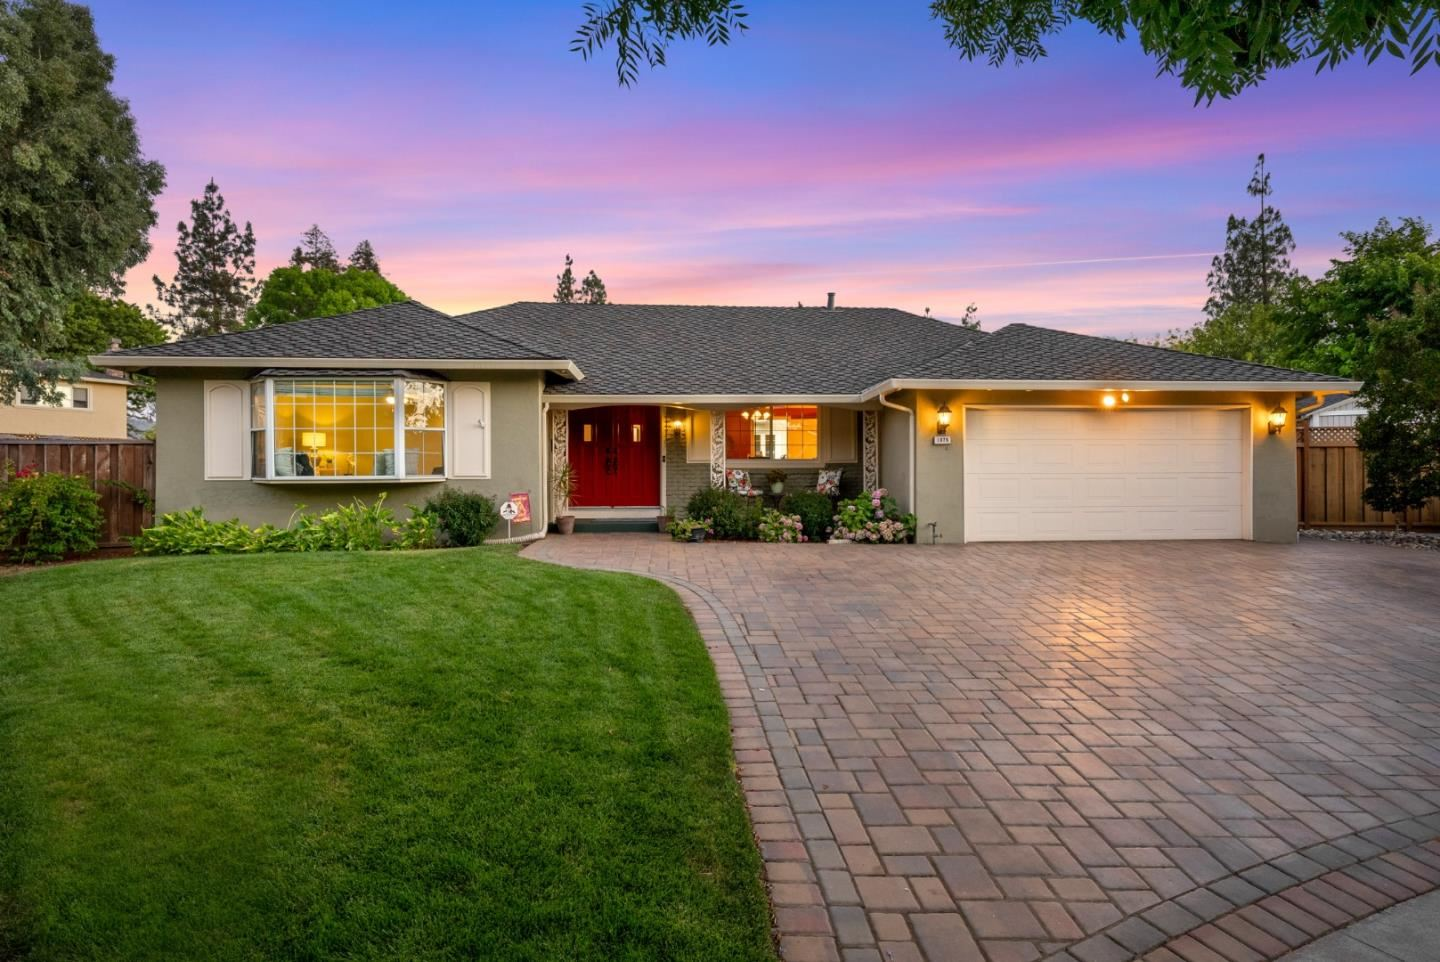 Photo for 1078 Hedgecroft Place, SAN JOSE, CA 95120 (MLS # ML81854425)